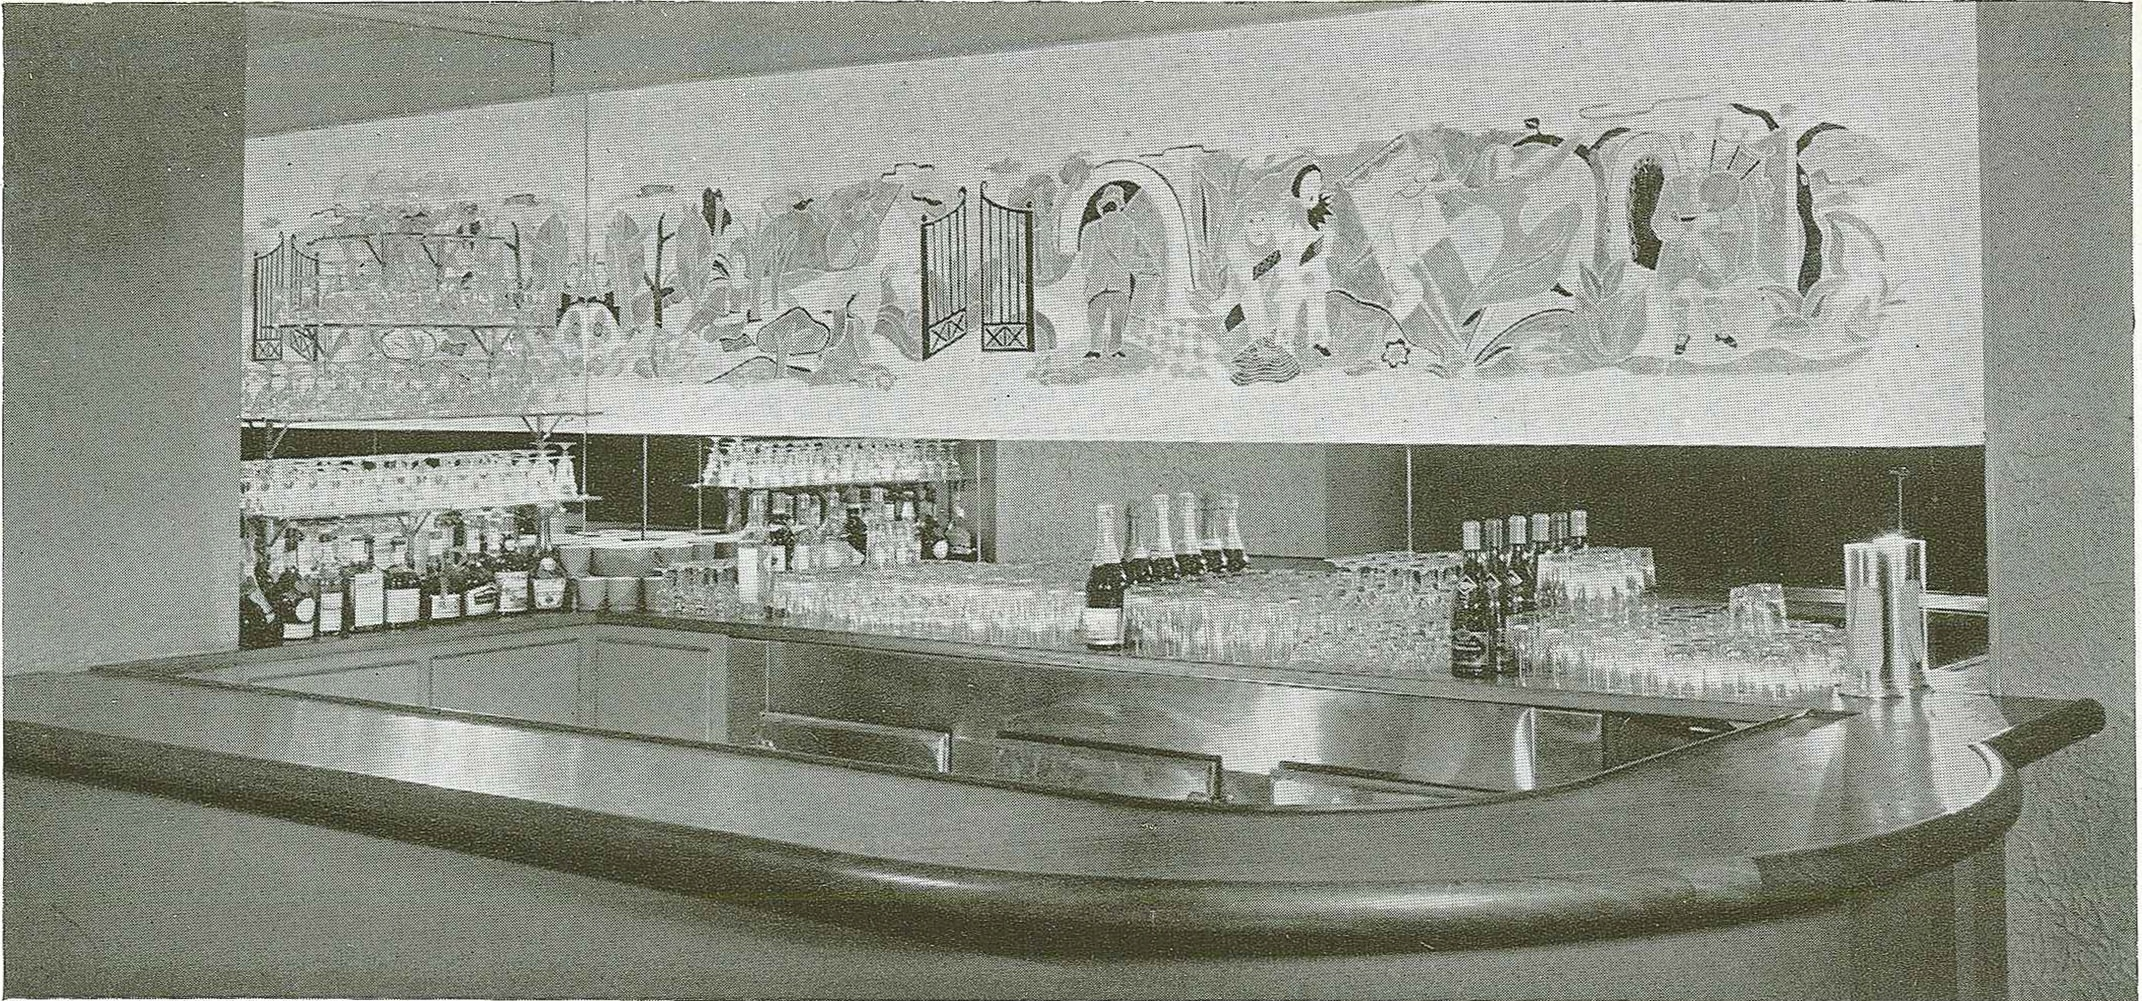 Brandtner's Mural above the bar in the Berkeley Hotel, Charles Geoffrey Holme, ed., Decorative Art: The Studio Yearbook, 1942, p. 78, courtesy of Soren Schoff,  LSA - Public Services, Kohler Art Library, University of Wisconsin - Madison, Madison, Wisconsin, USA